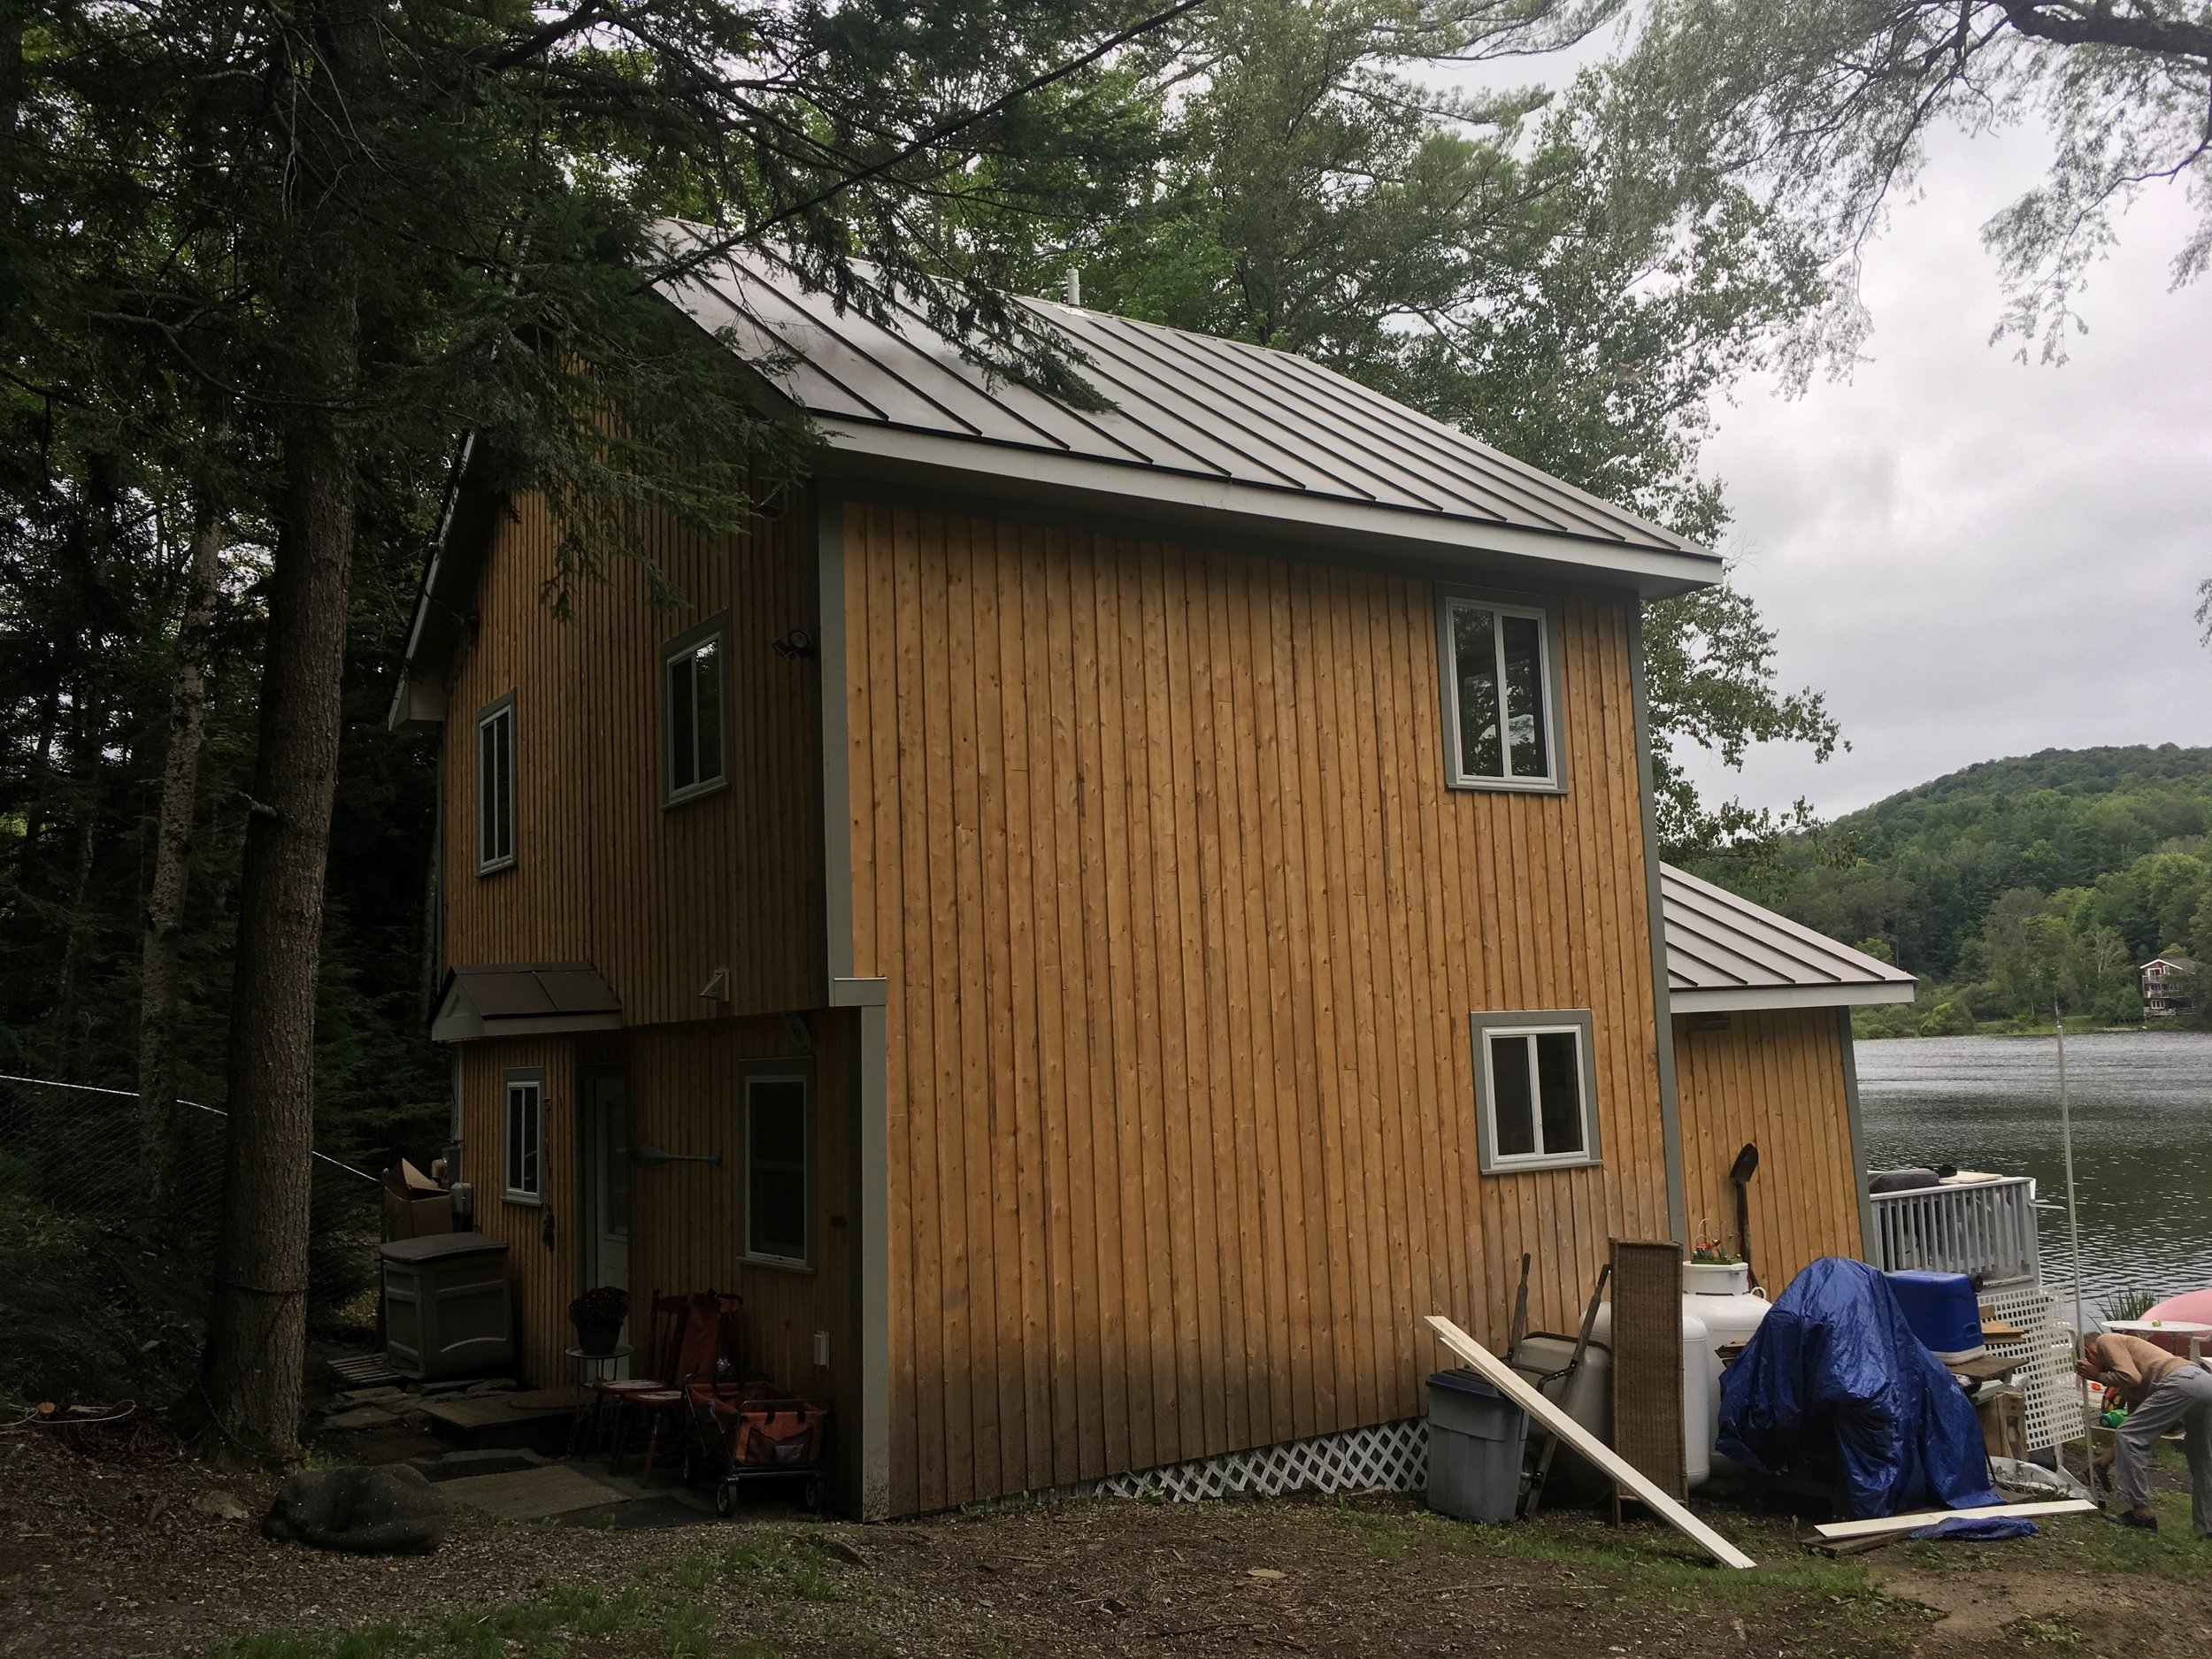 Rear view of now two-story renovated camp. (With exterior trim work still underway)